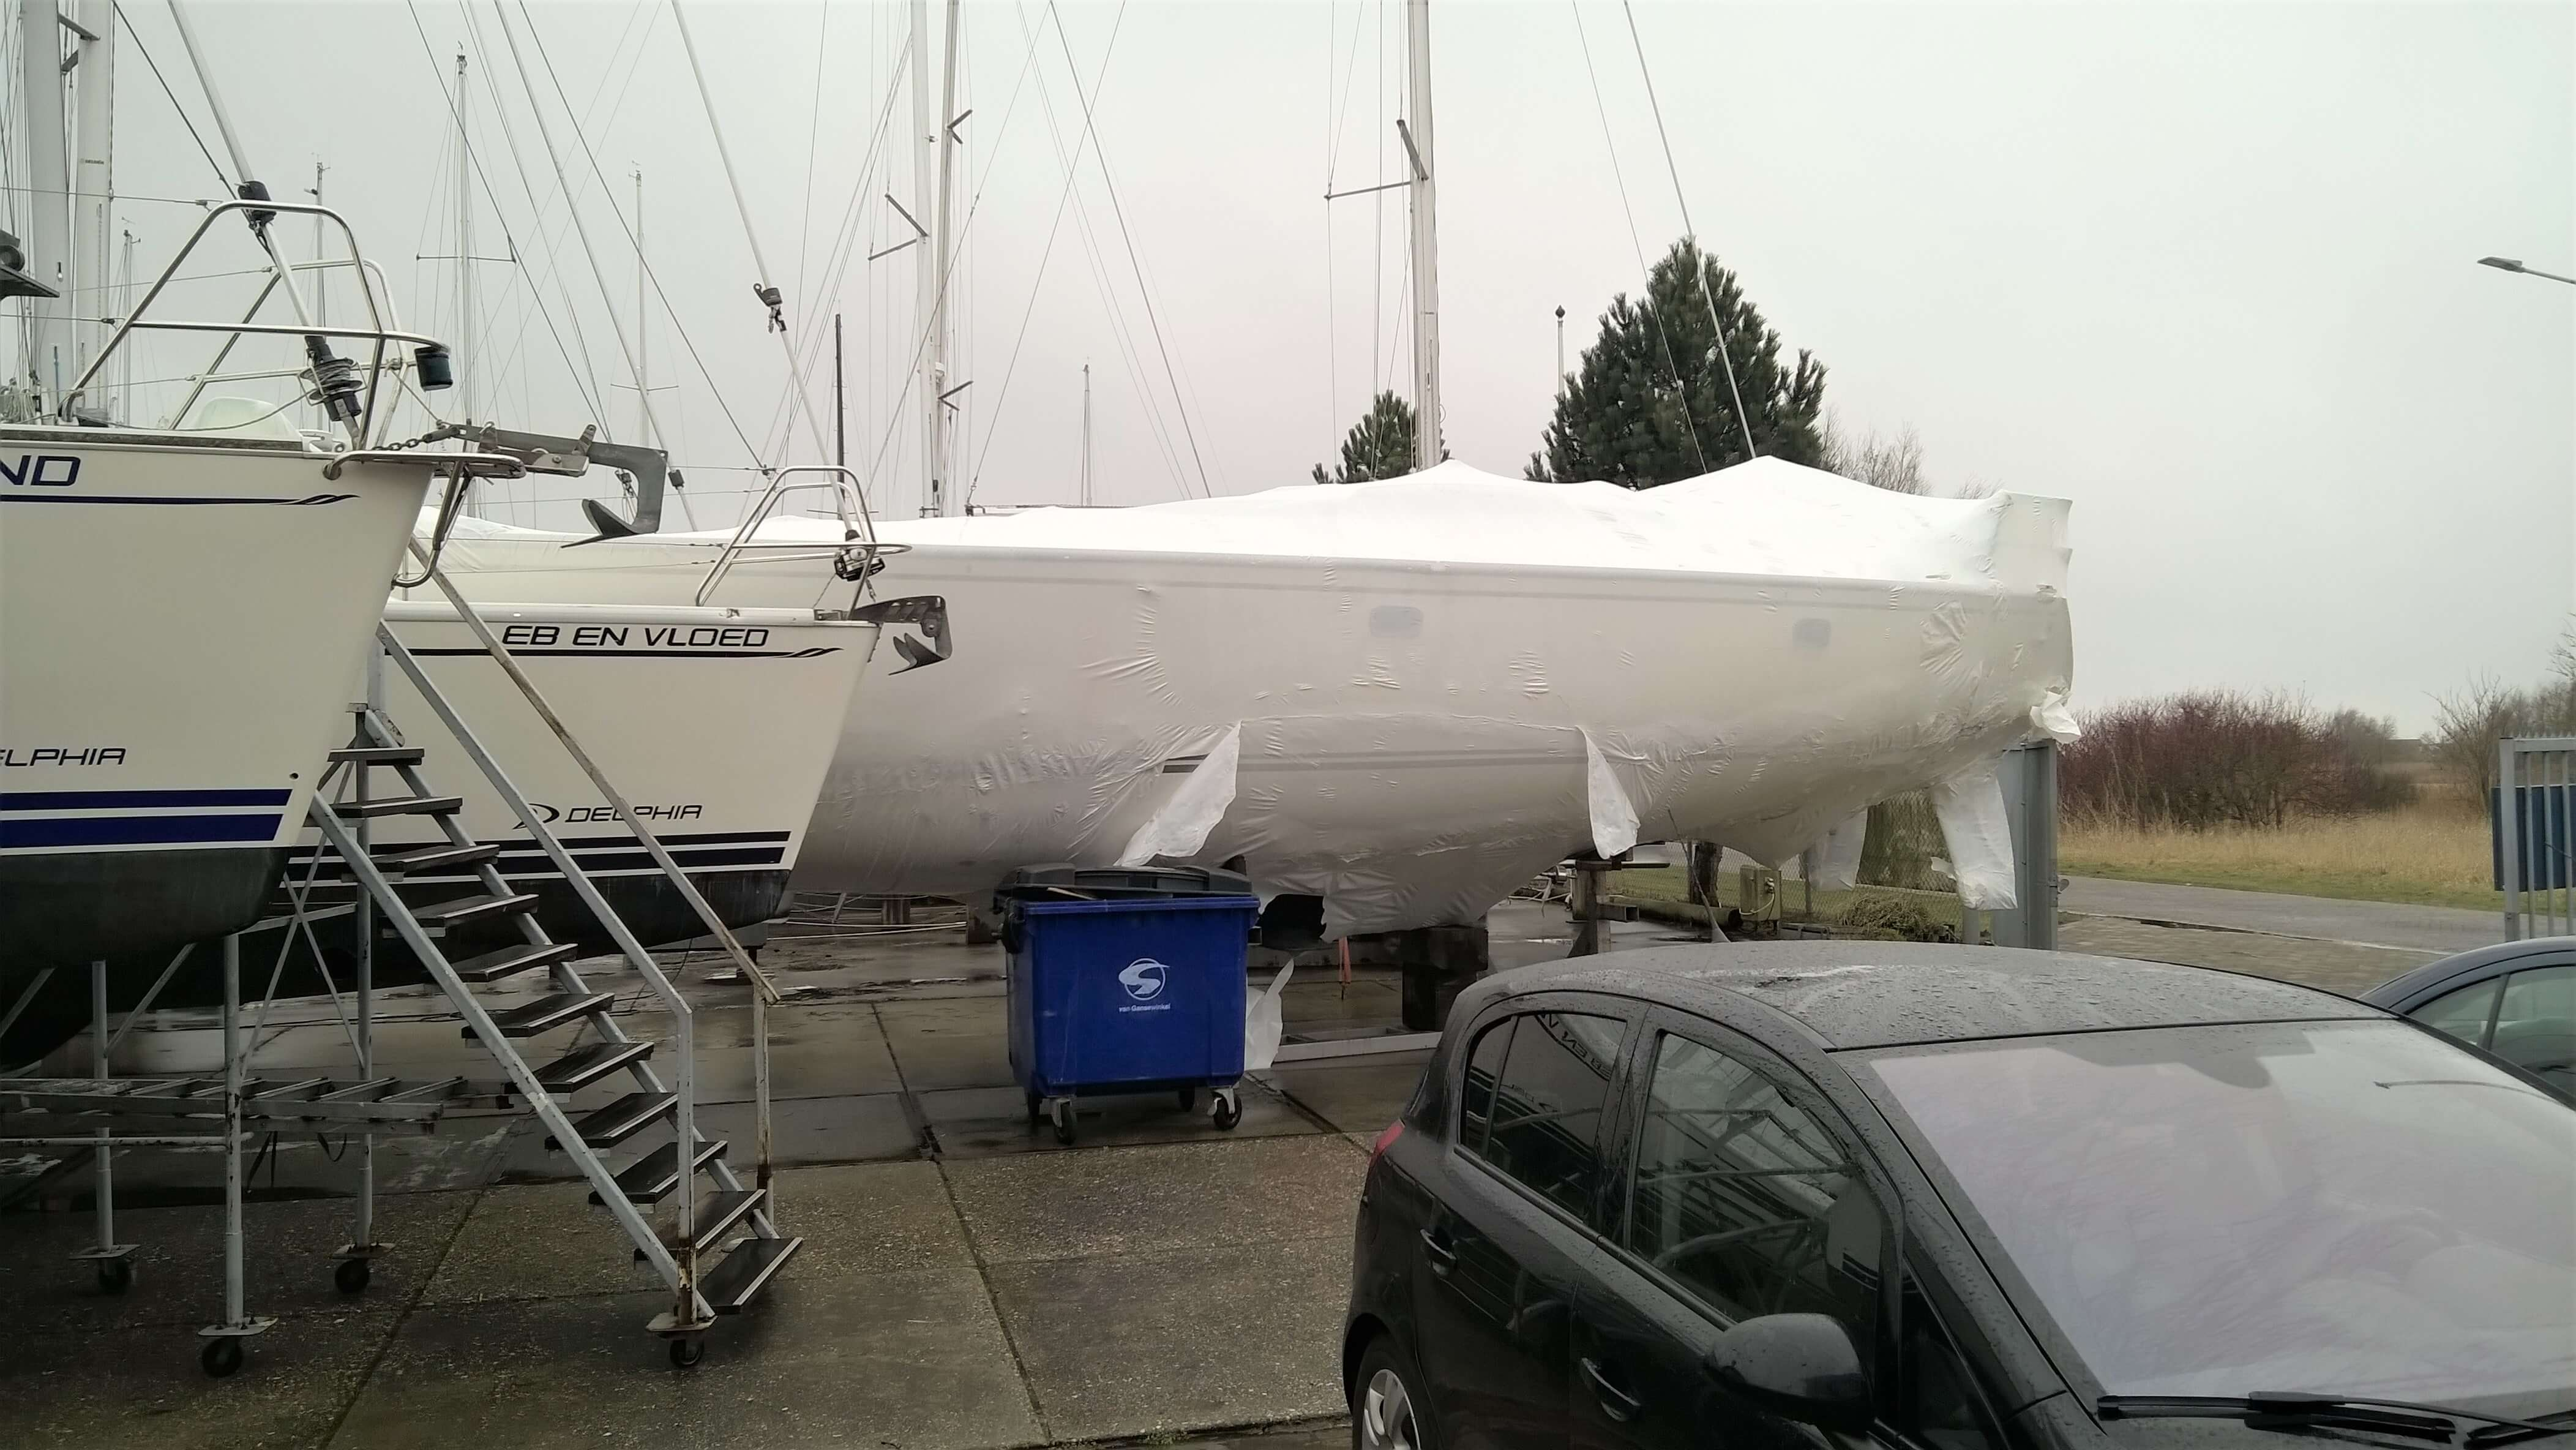 Unwrapping the Package - Getting Ready for Sailing Season